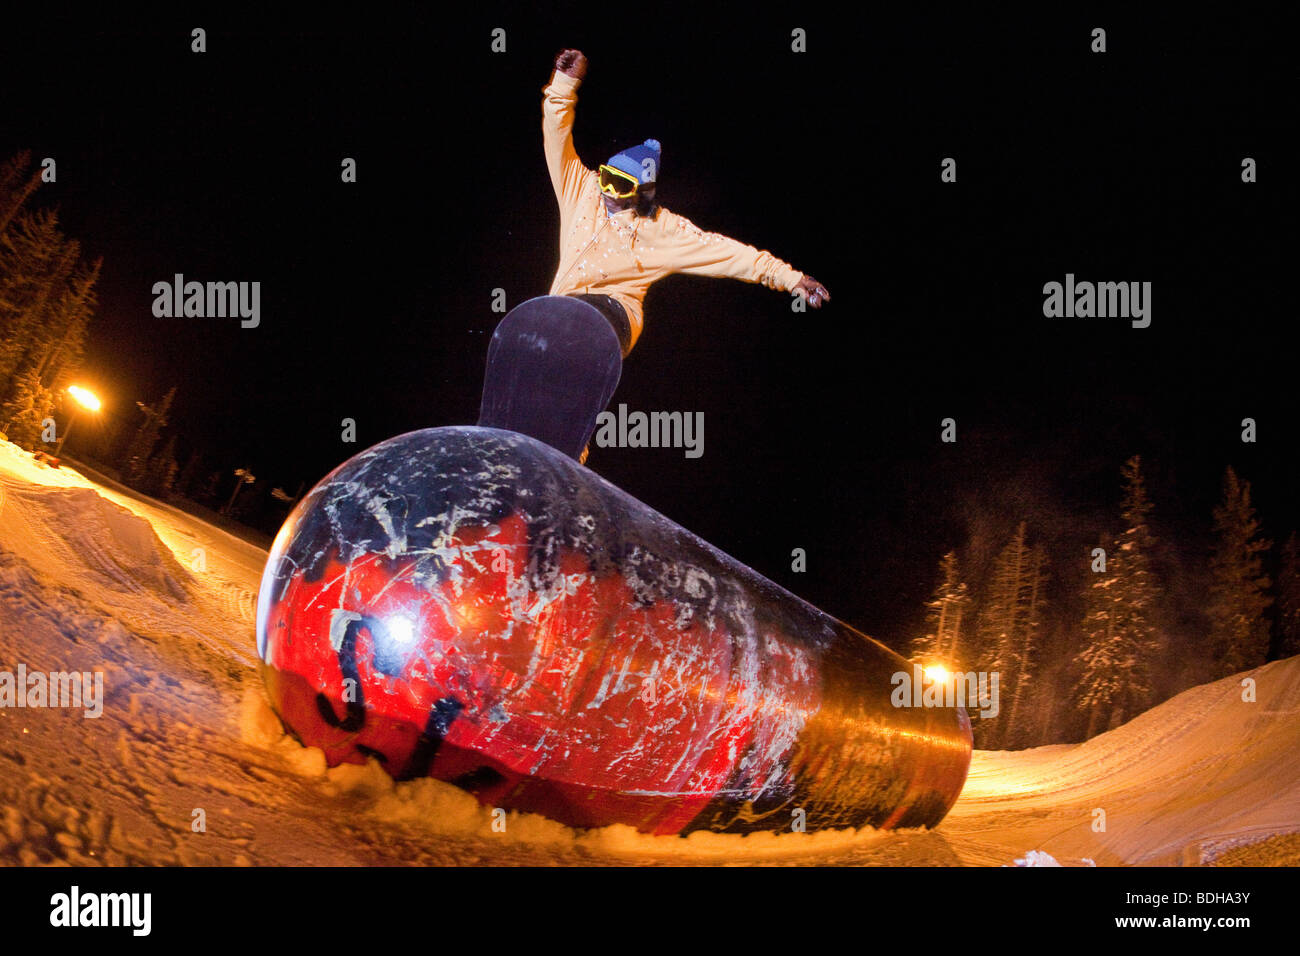 View from below of a snowboarder riding in the board park at night. - Stock Image